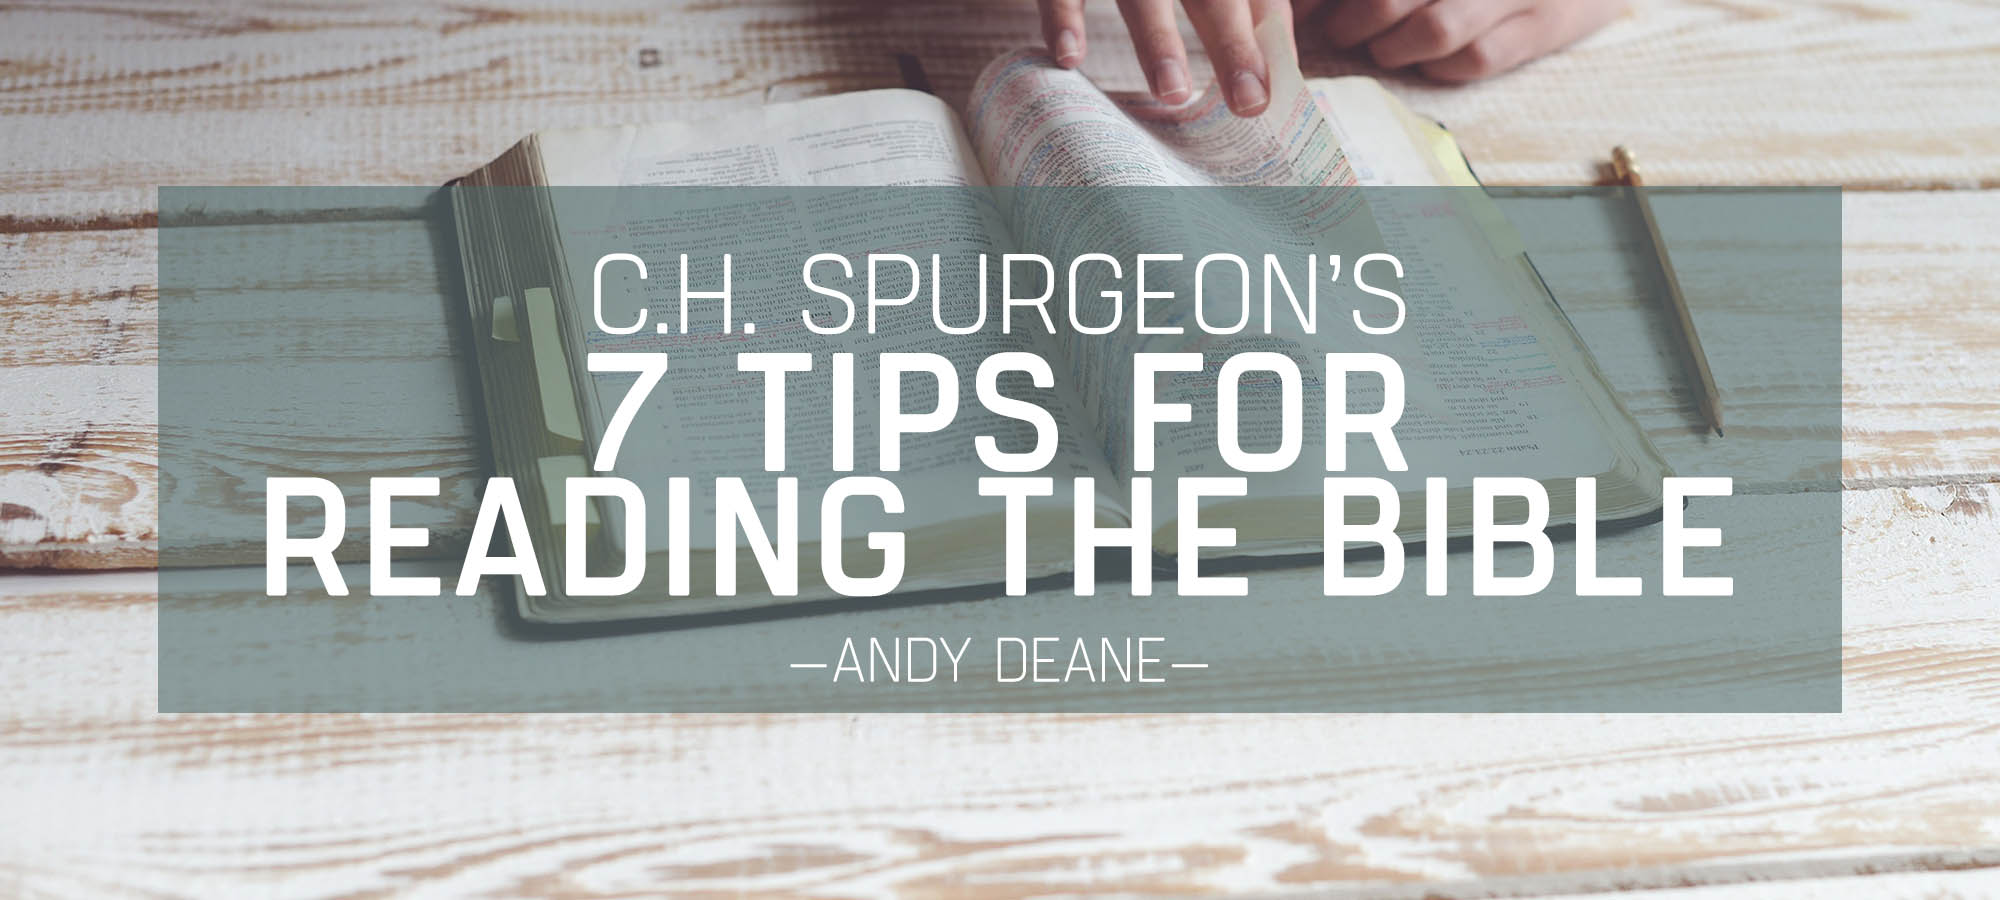 Andy-Deane-C.H.-Spurgeons-Seven-Tips-for-Reading-the-Bible_170818_124256.jpg